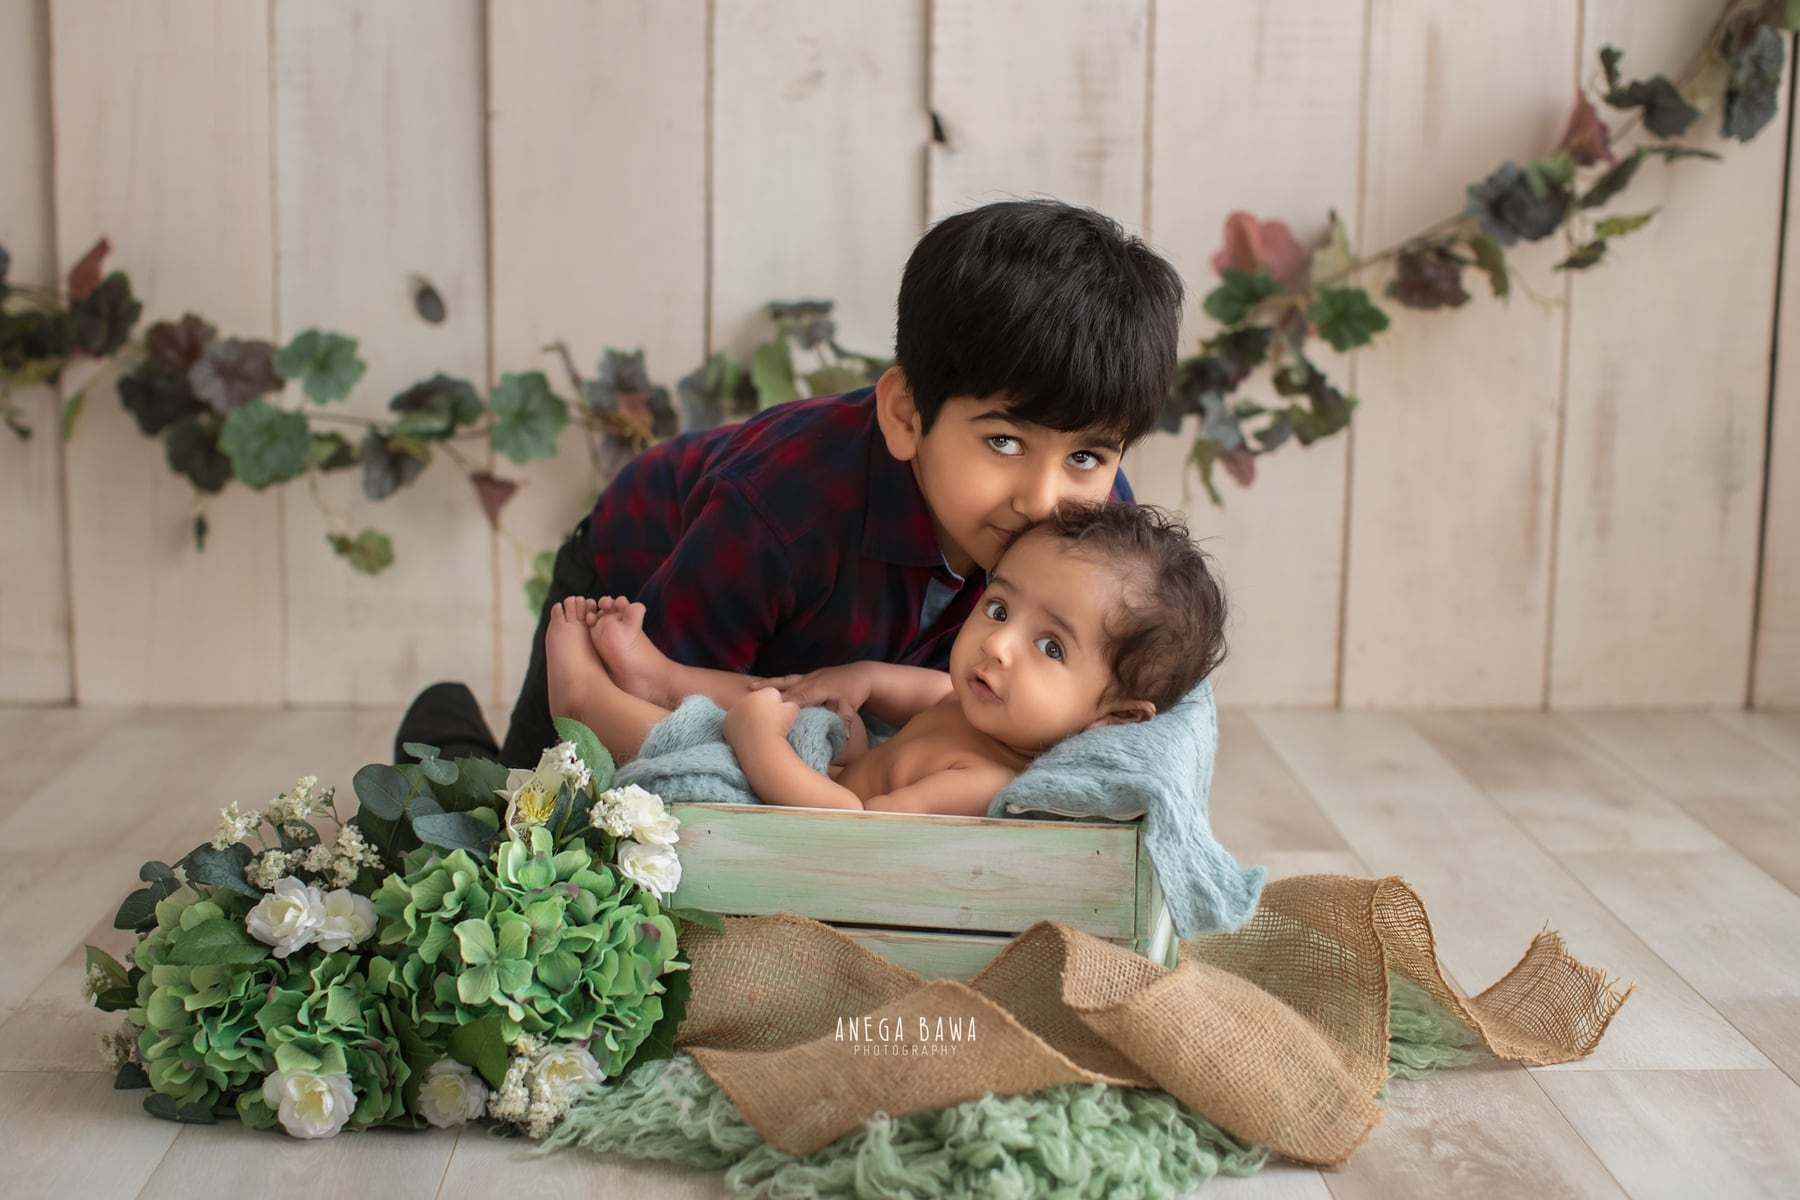 245602-white-wooden-background-green-floral-baby-and-brother-photography-delhi-5-6-7-months-baby-photoshoot-gurgaon-anega-bawa